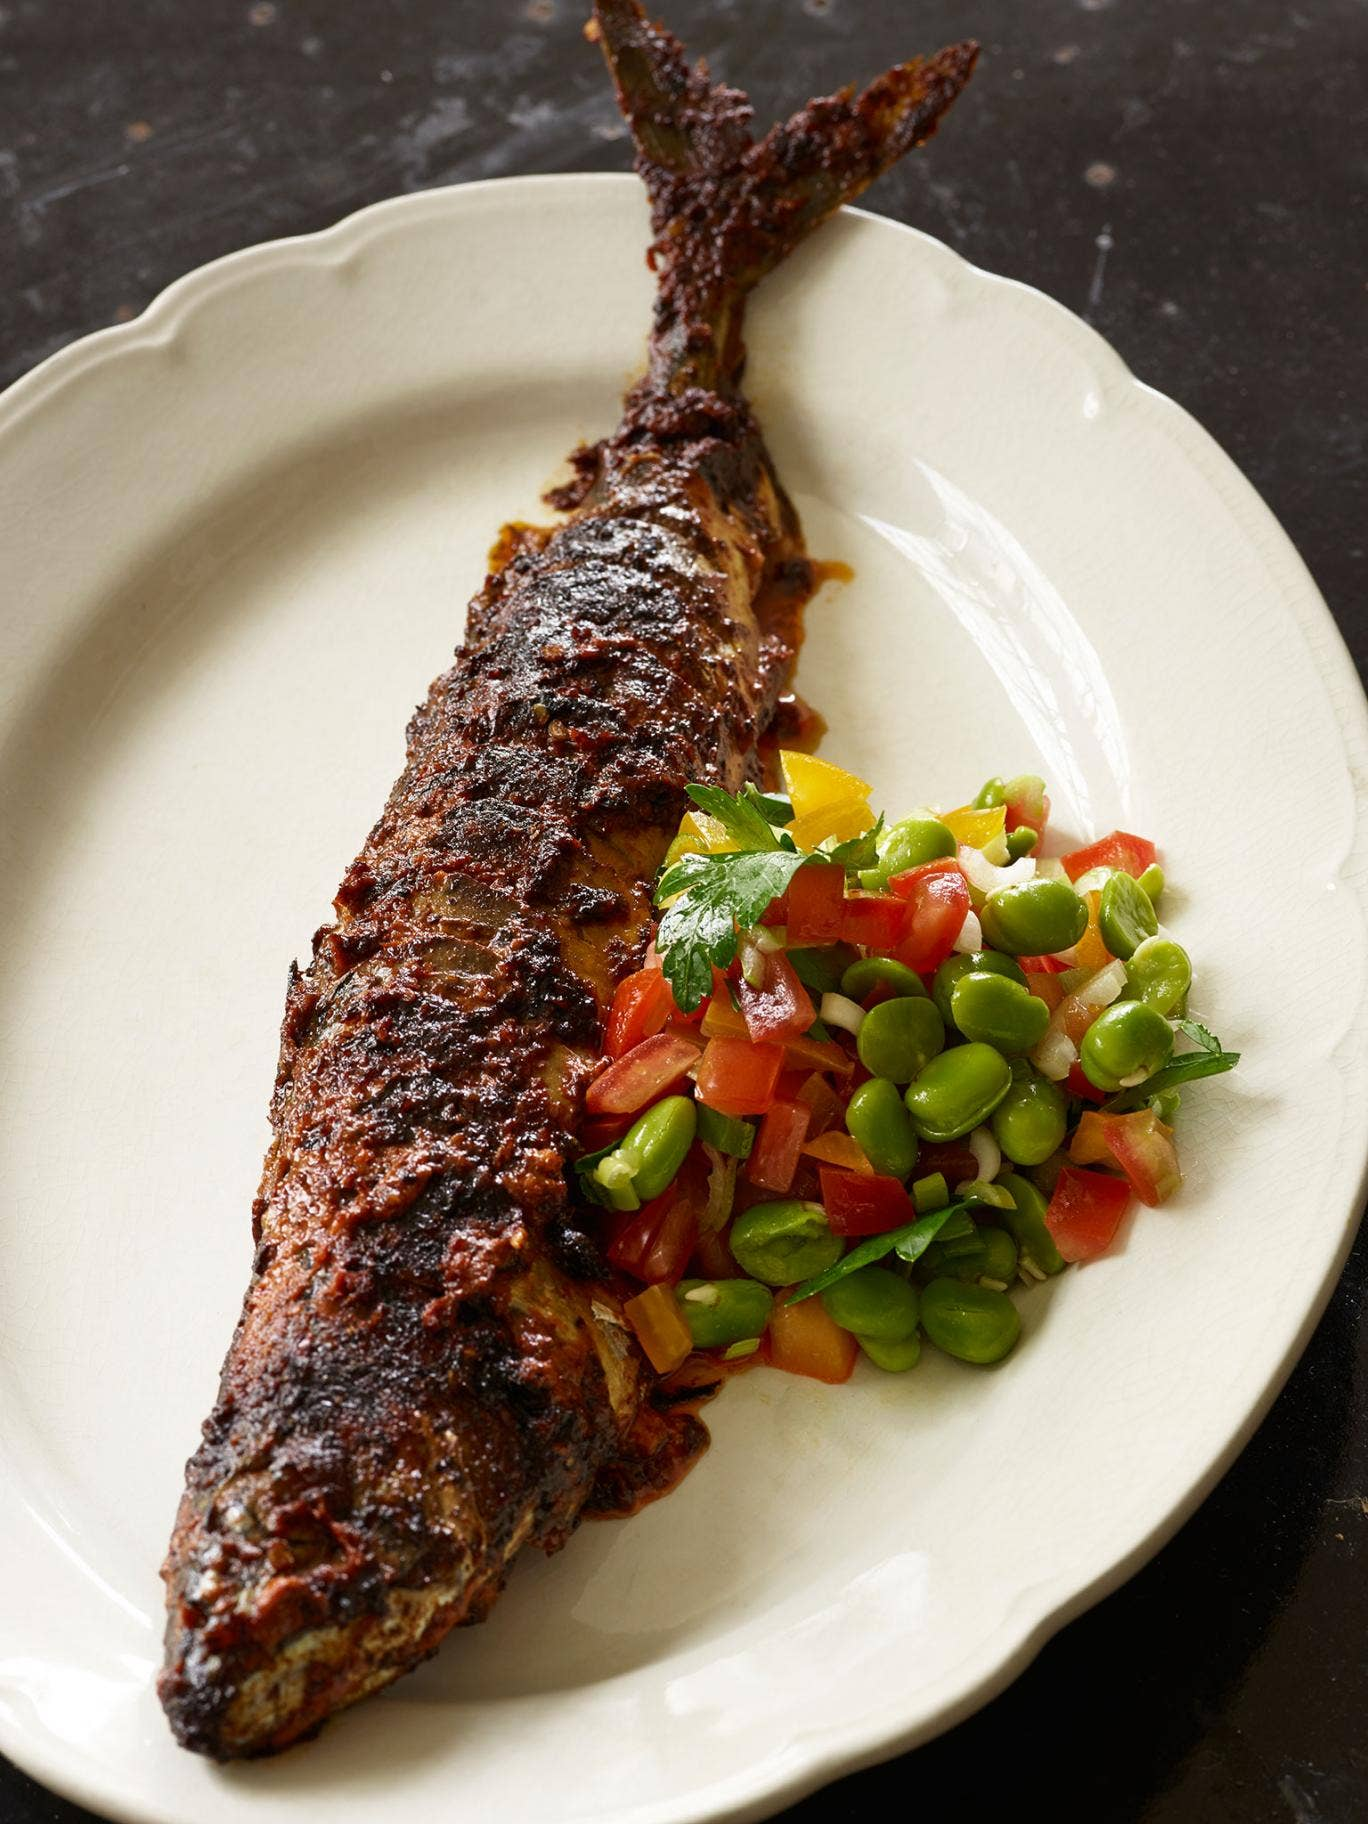 You can make Mark's mackerel piri piri as hot as you like